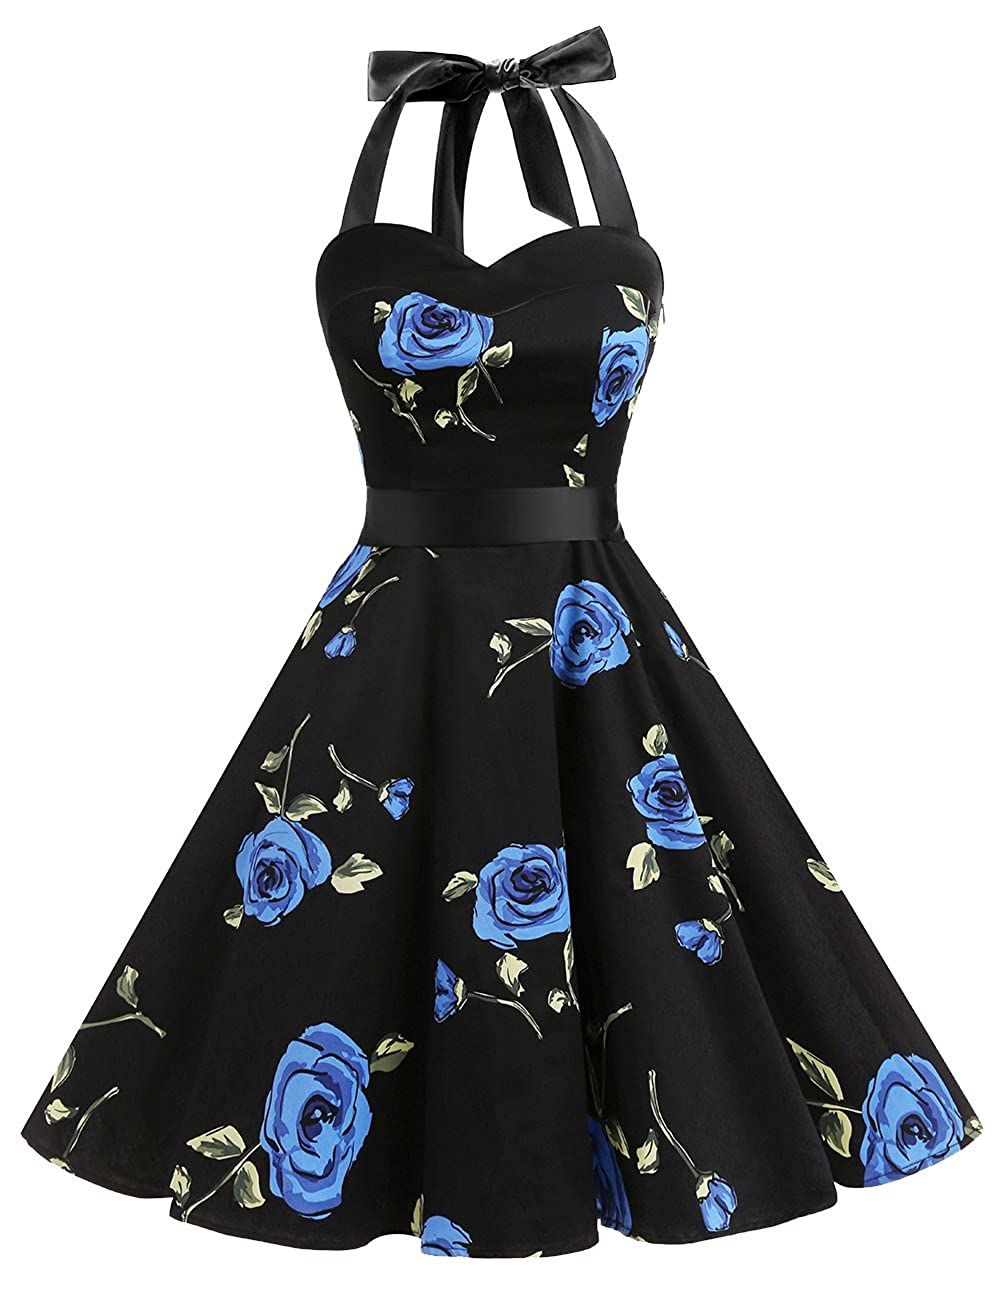 TALLA 3XL. Dresstells® Halter 50s Rockabilly Polka Dots Audrey Dress Retro Cocktail Dress Blueflower 3XL